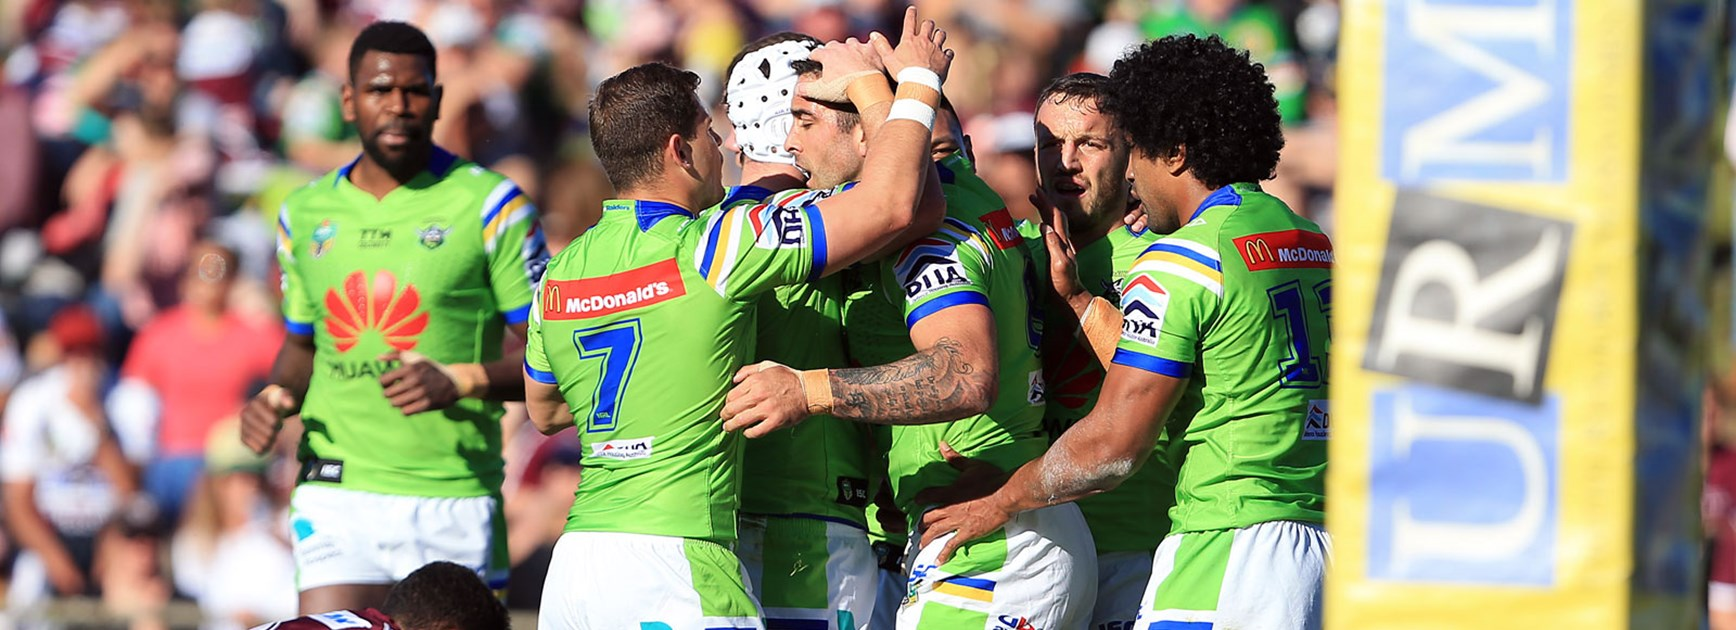 Raiders players celebrate during their win over the Sea Eagles in Round 25.